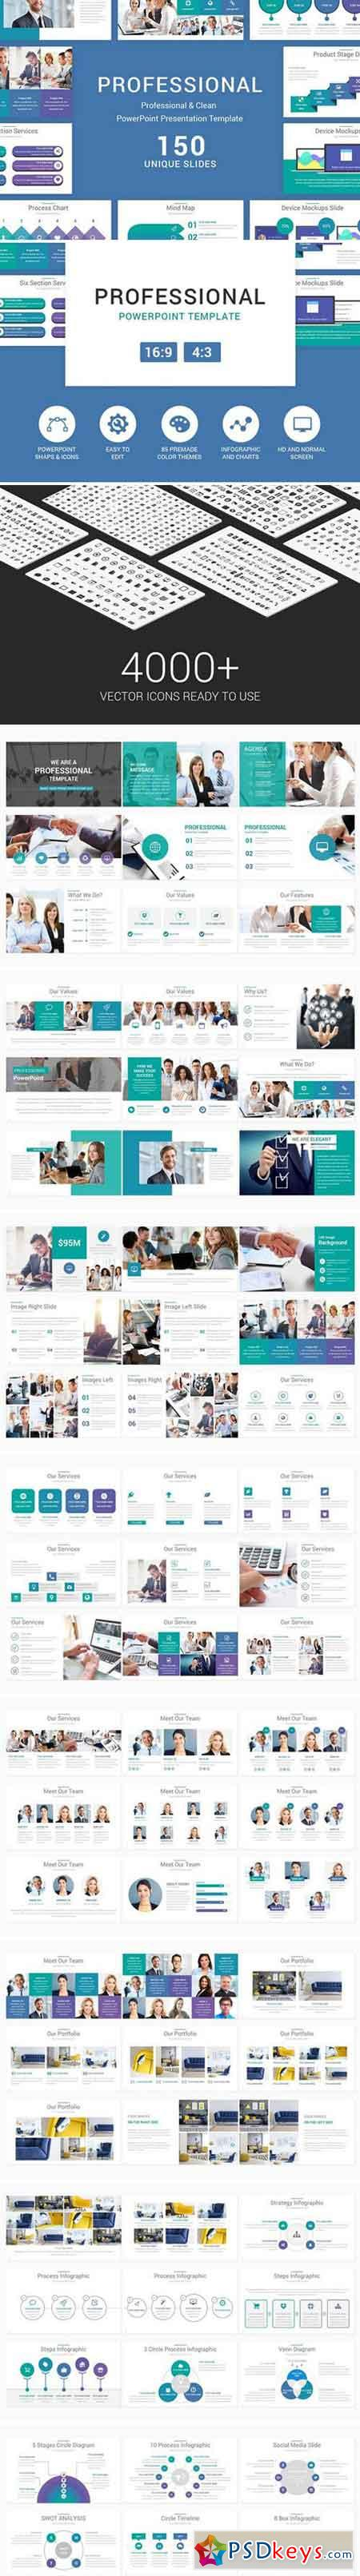 Professional PowerPoint Template 2359803